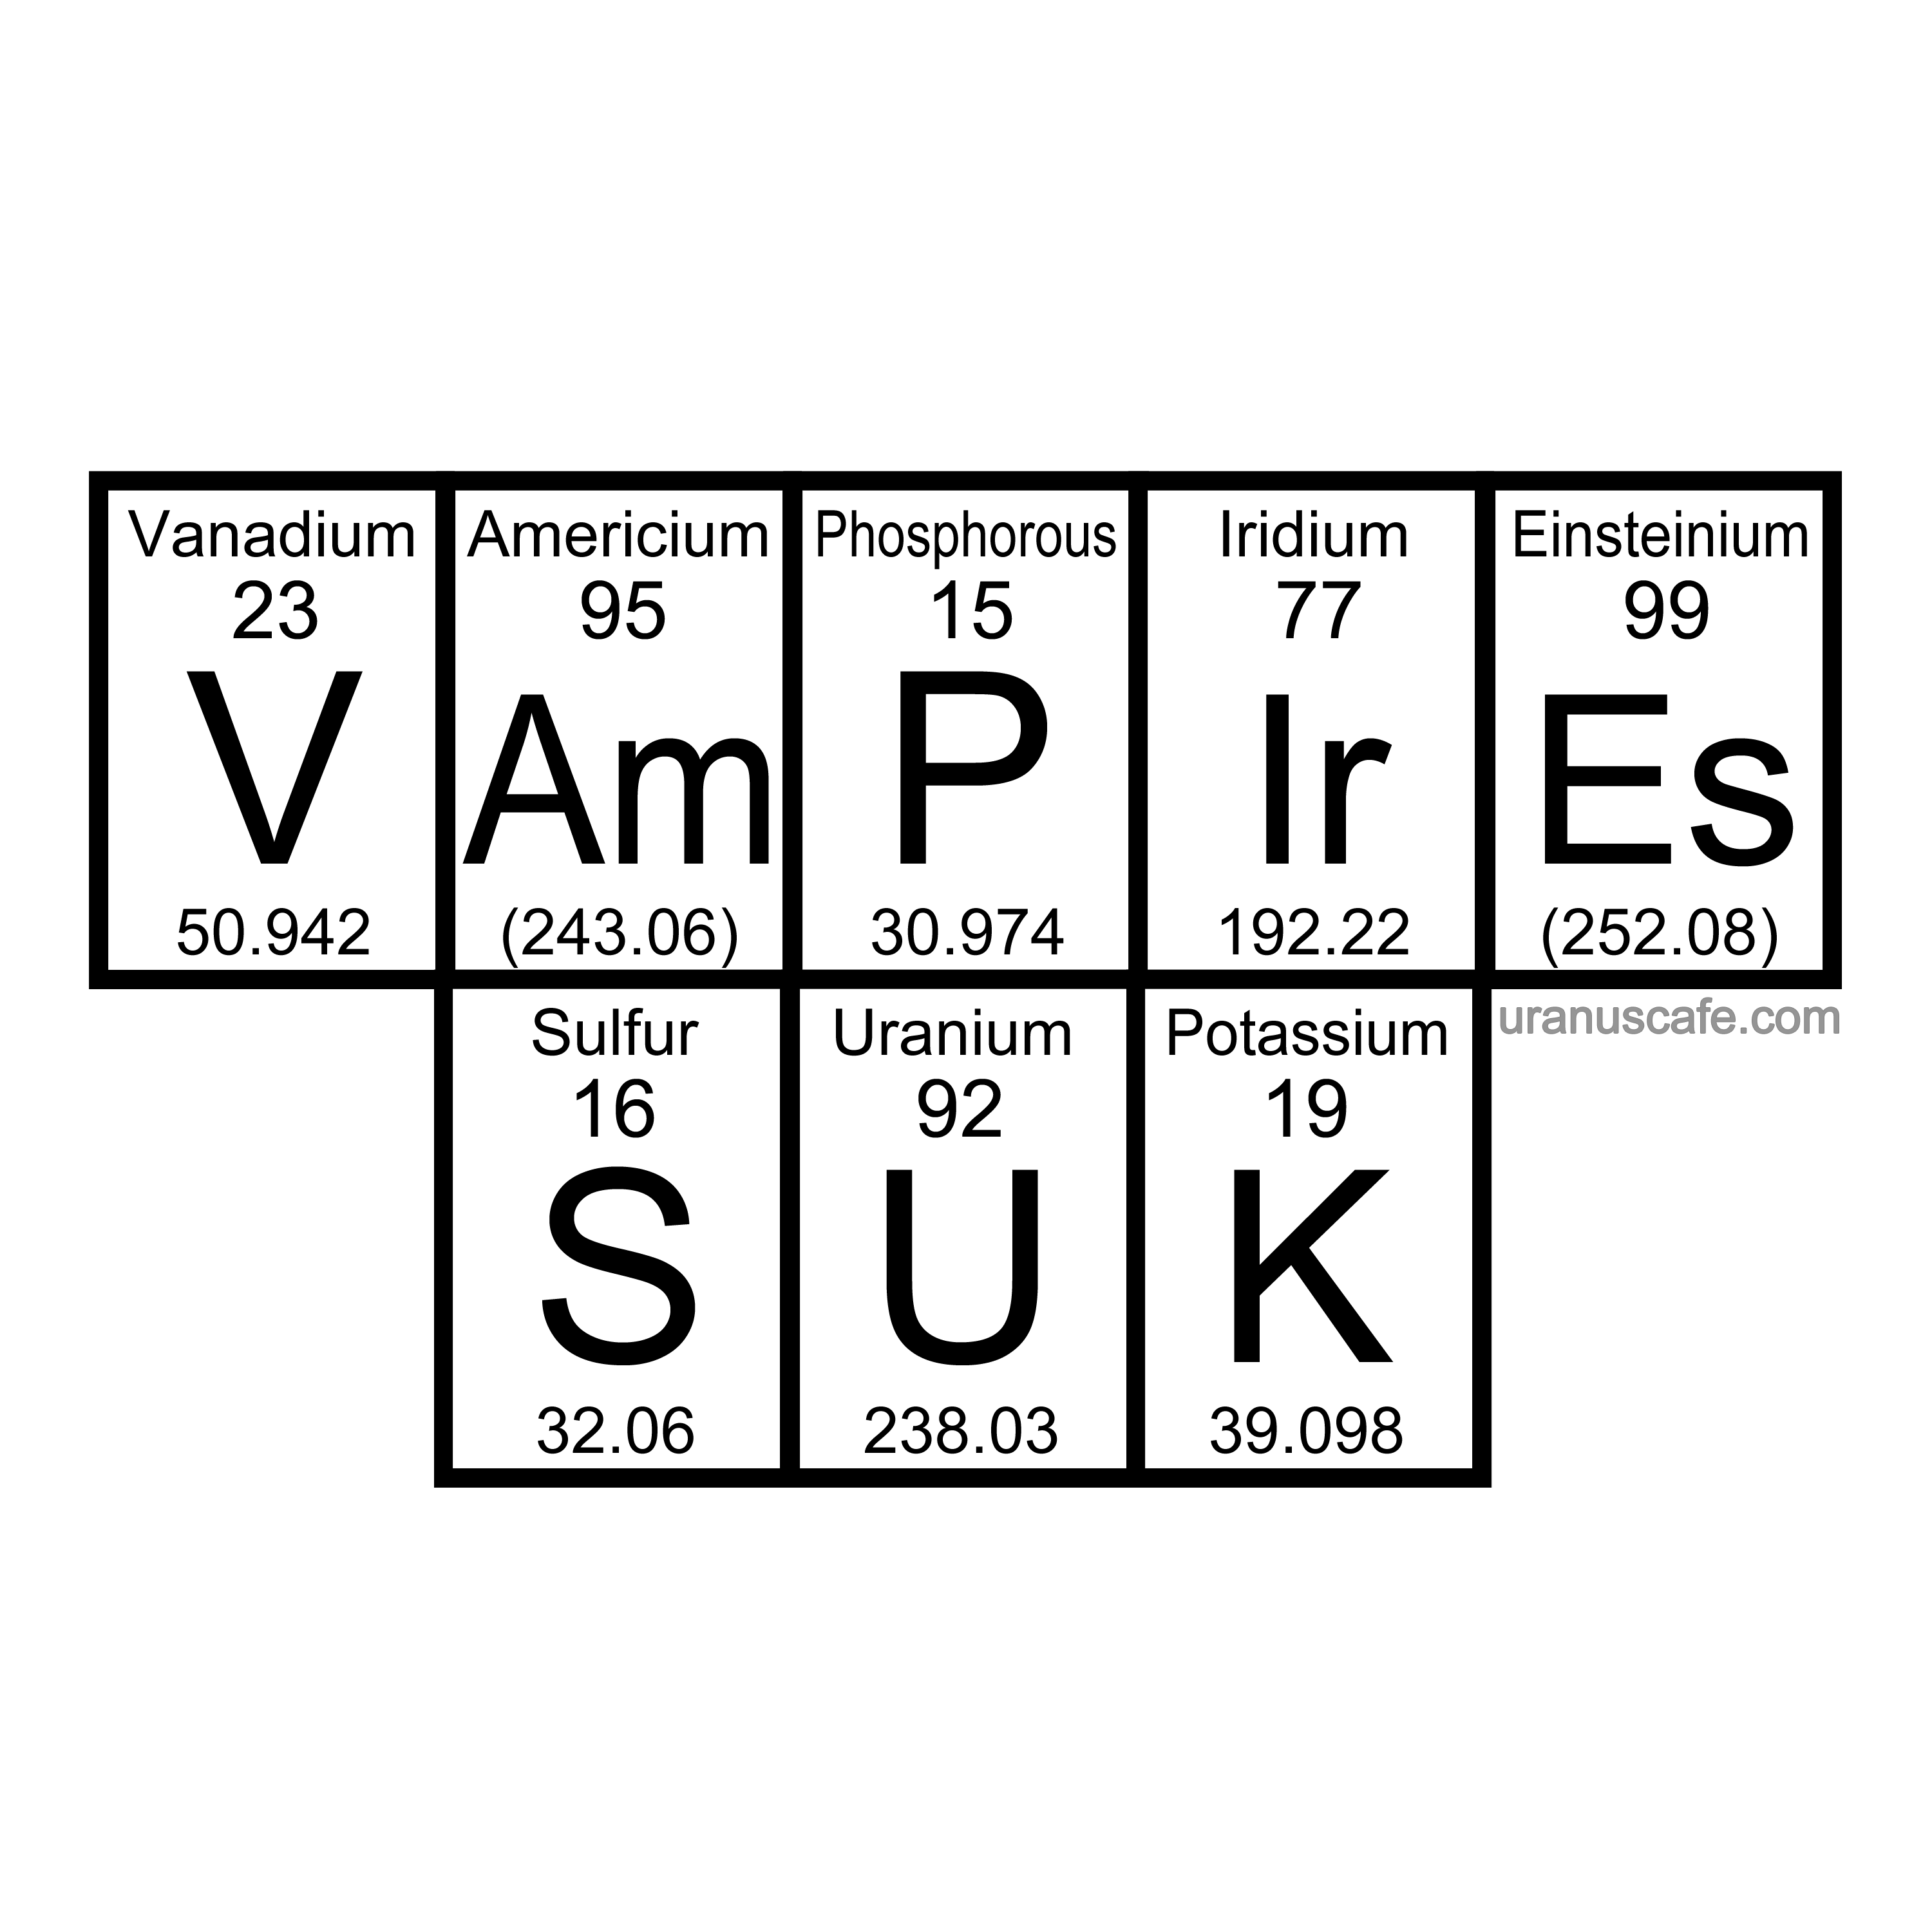 Uranuscafe vampires suk yes its from the periodic table of uranus cafe t shirts and gifts for geeks and nerds urtaz Images